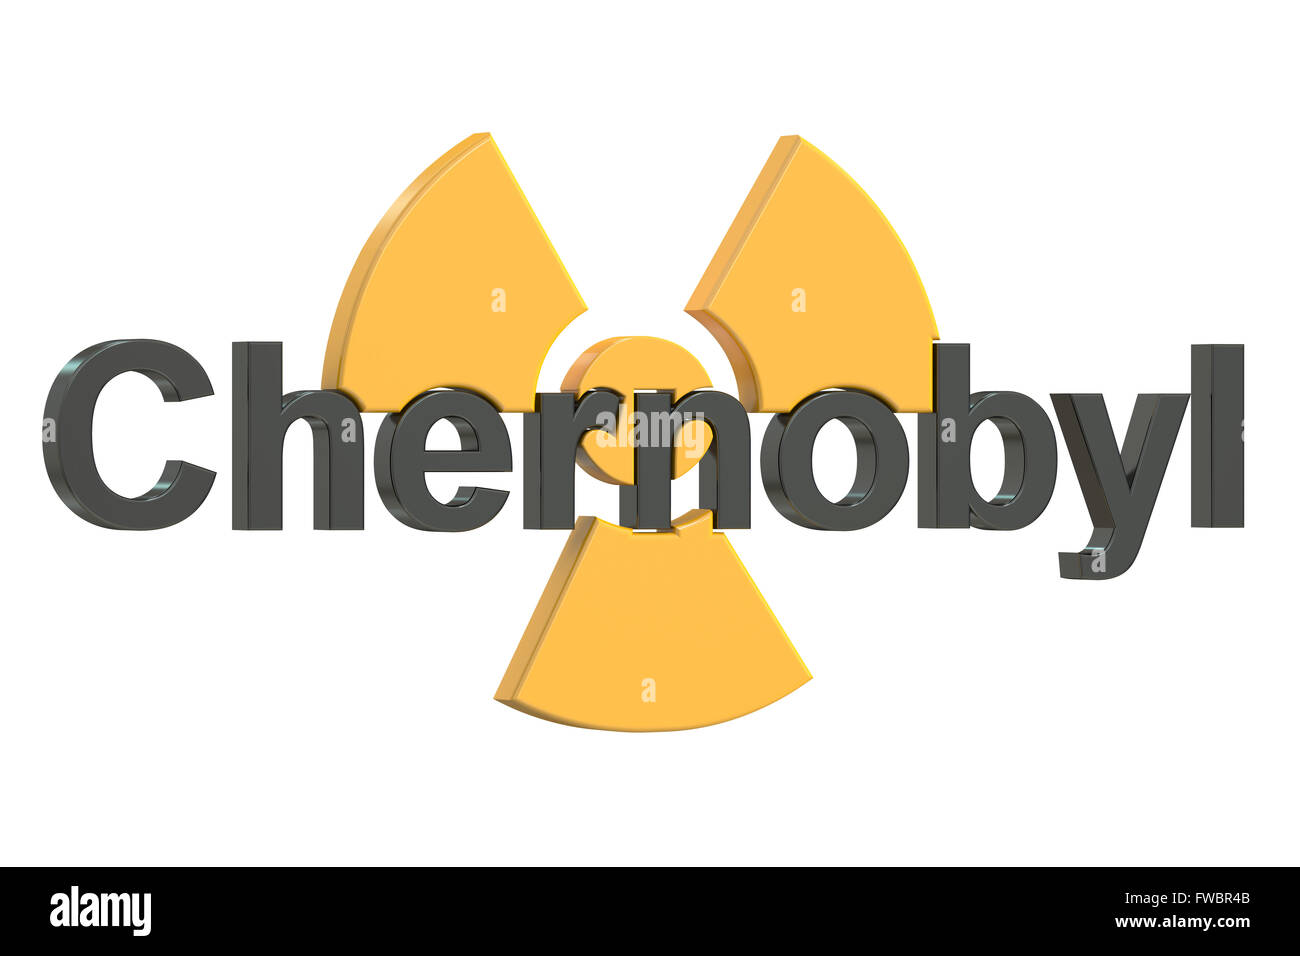 Chernobyl disaster concept, 3D rendering - Stock Image